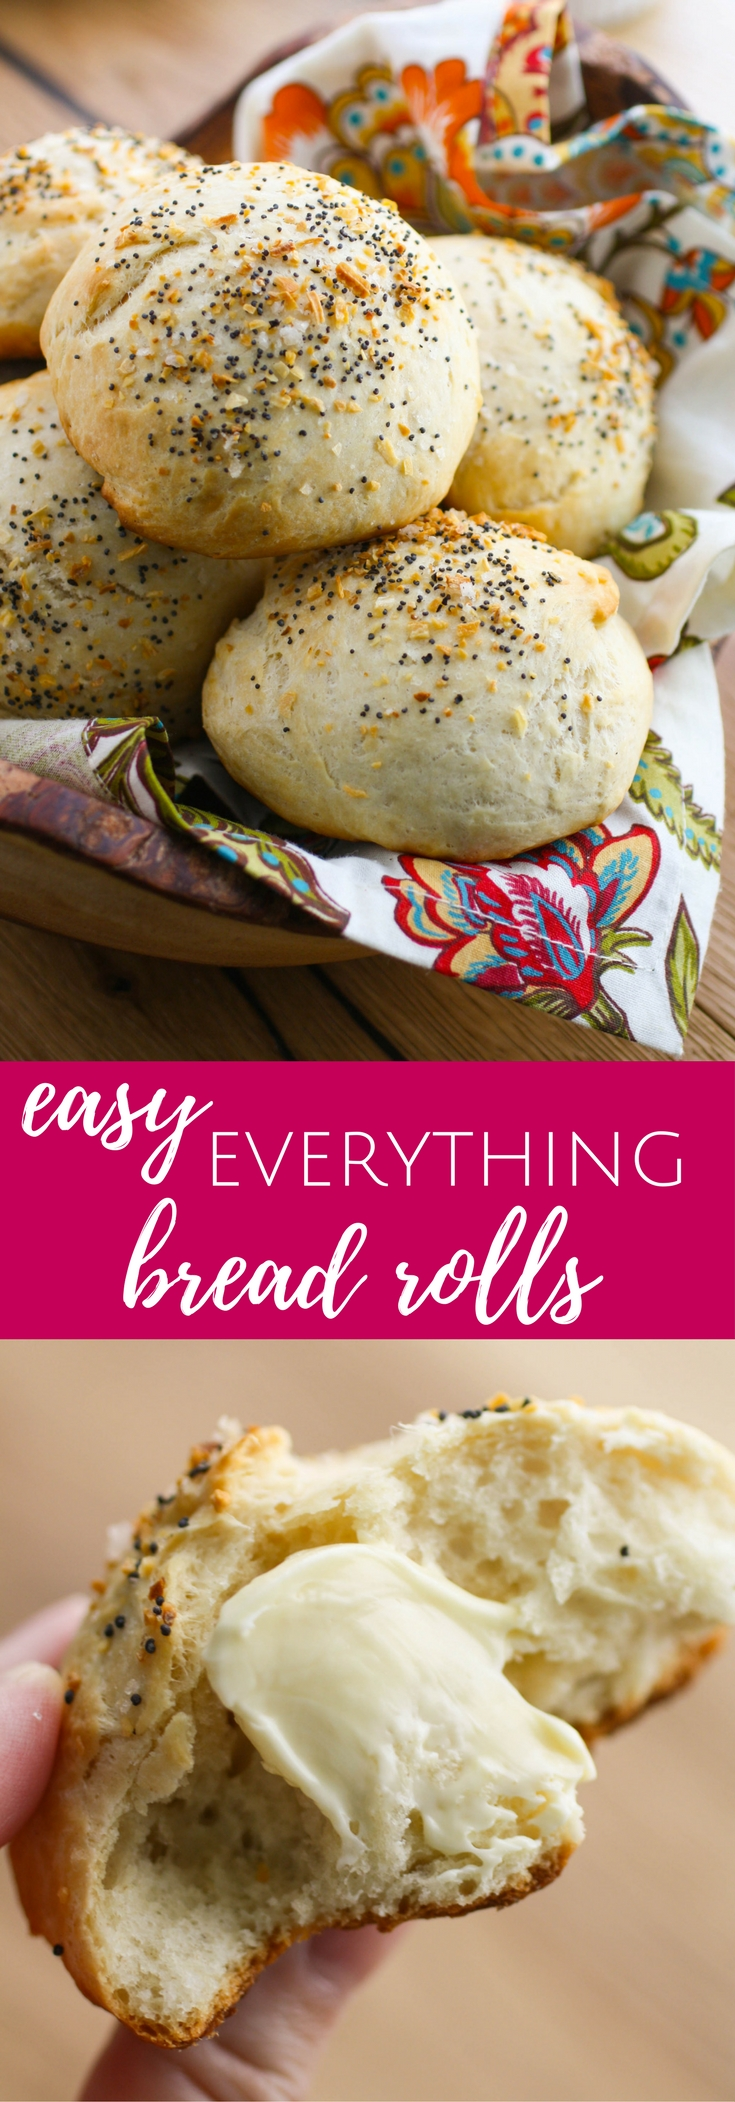 Easy Everything Bread Rolls are the bread rolls you've been looking for! These homemade rolls are a delight, and easy to make, too.